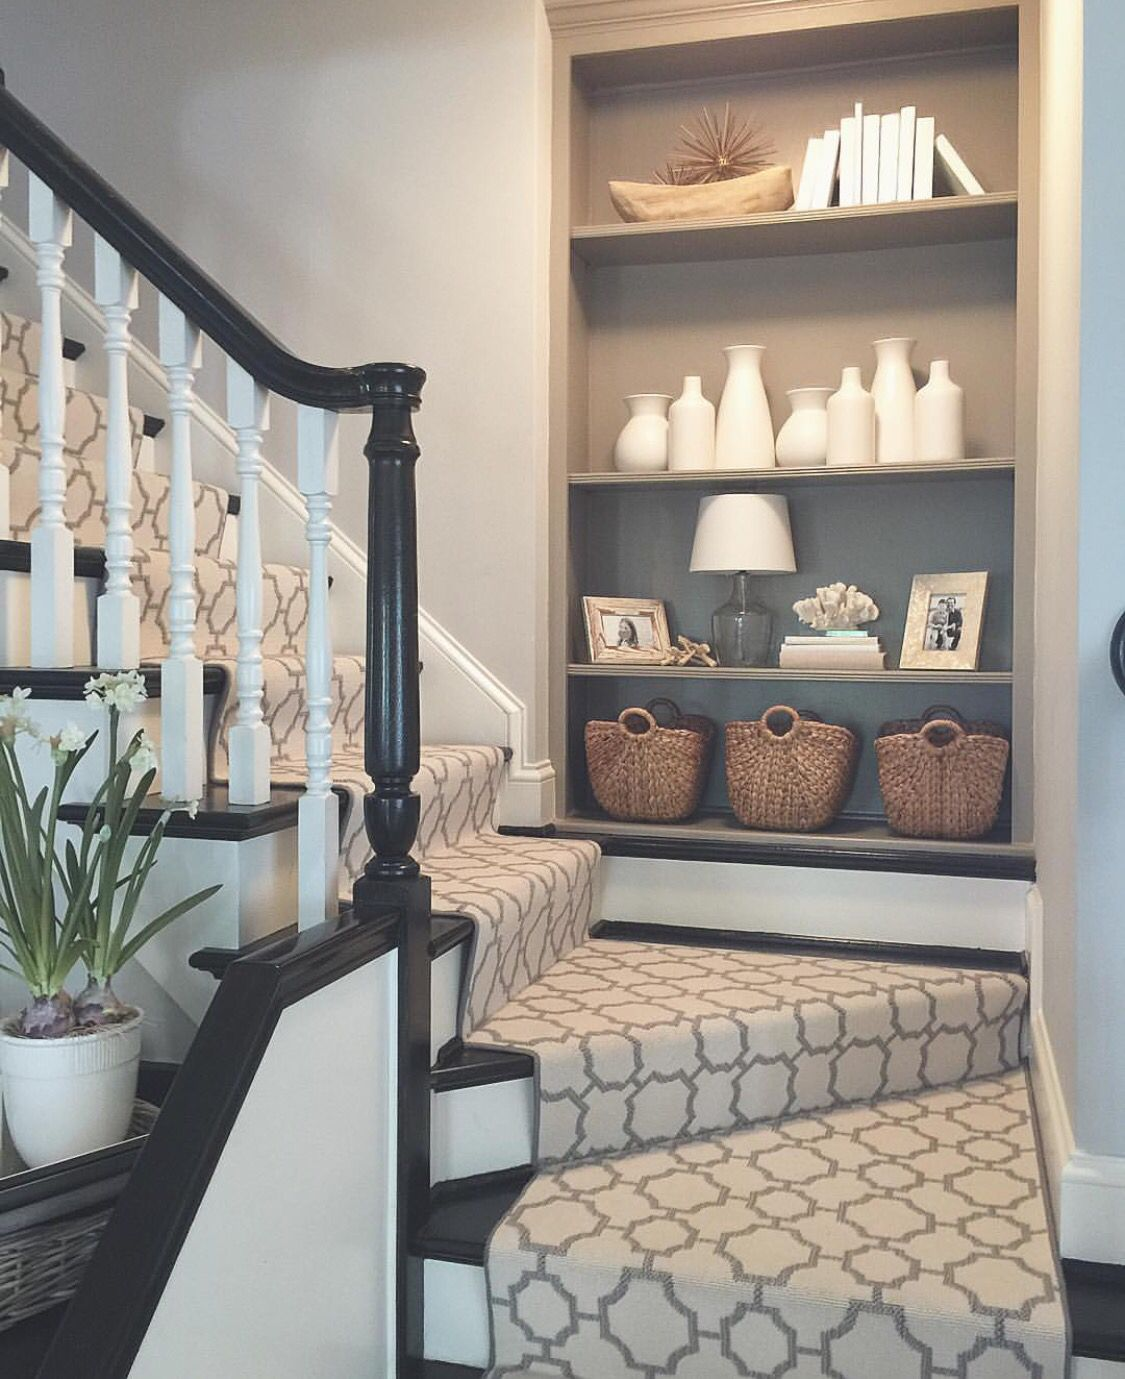 Staircase Makeover, Staircase Wall Decorating Ideas, Decorating Ideas For  Stairs And Hallways, Stairwell Decorating Ideas, Stairway Decorating Ideas,  ...